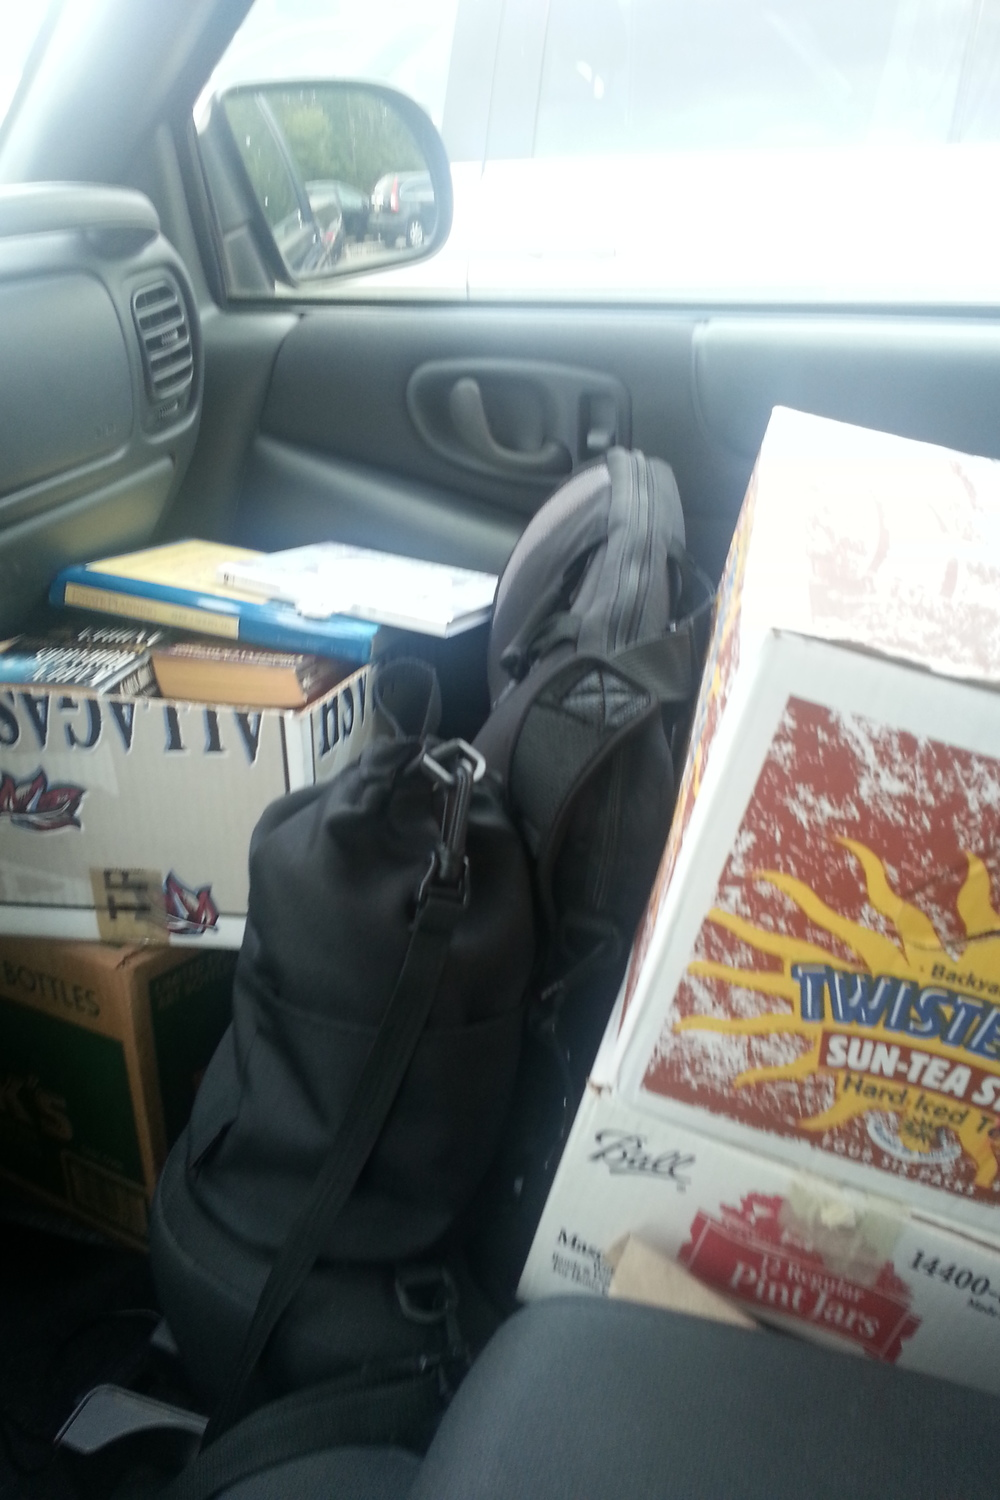 On my way to donate books to the Pemberton library from our book drive.